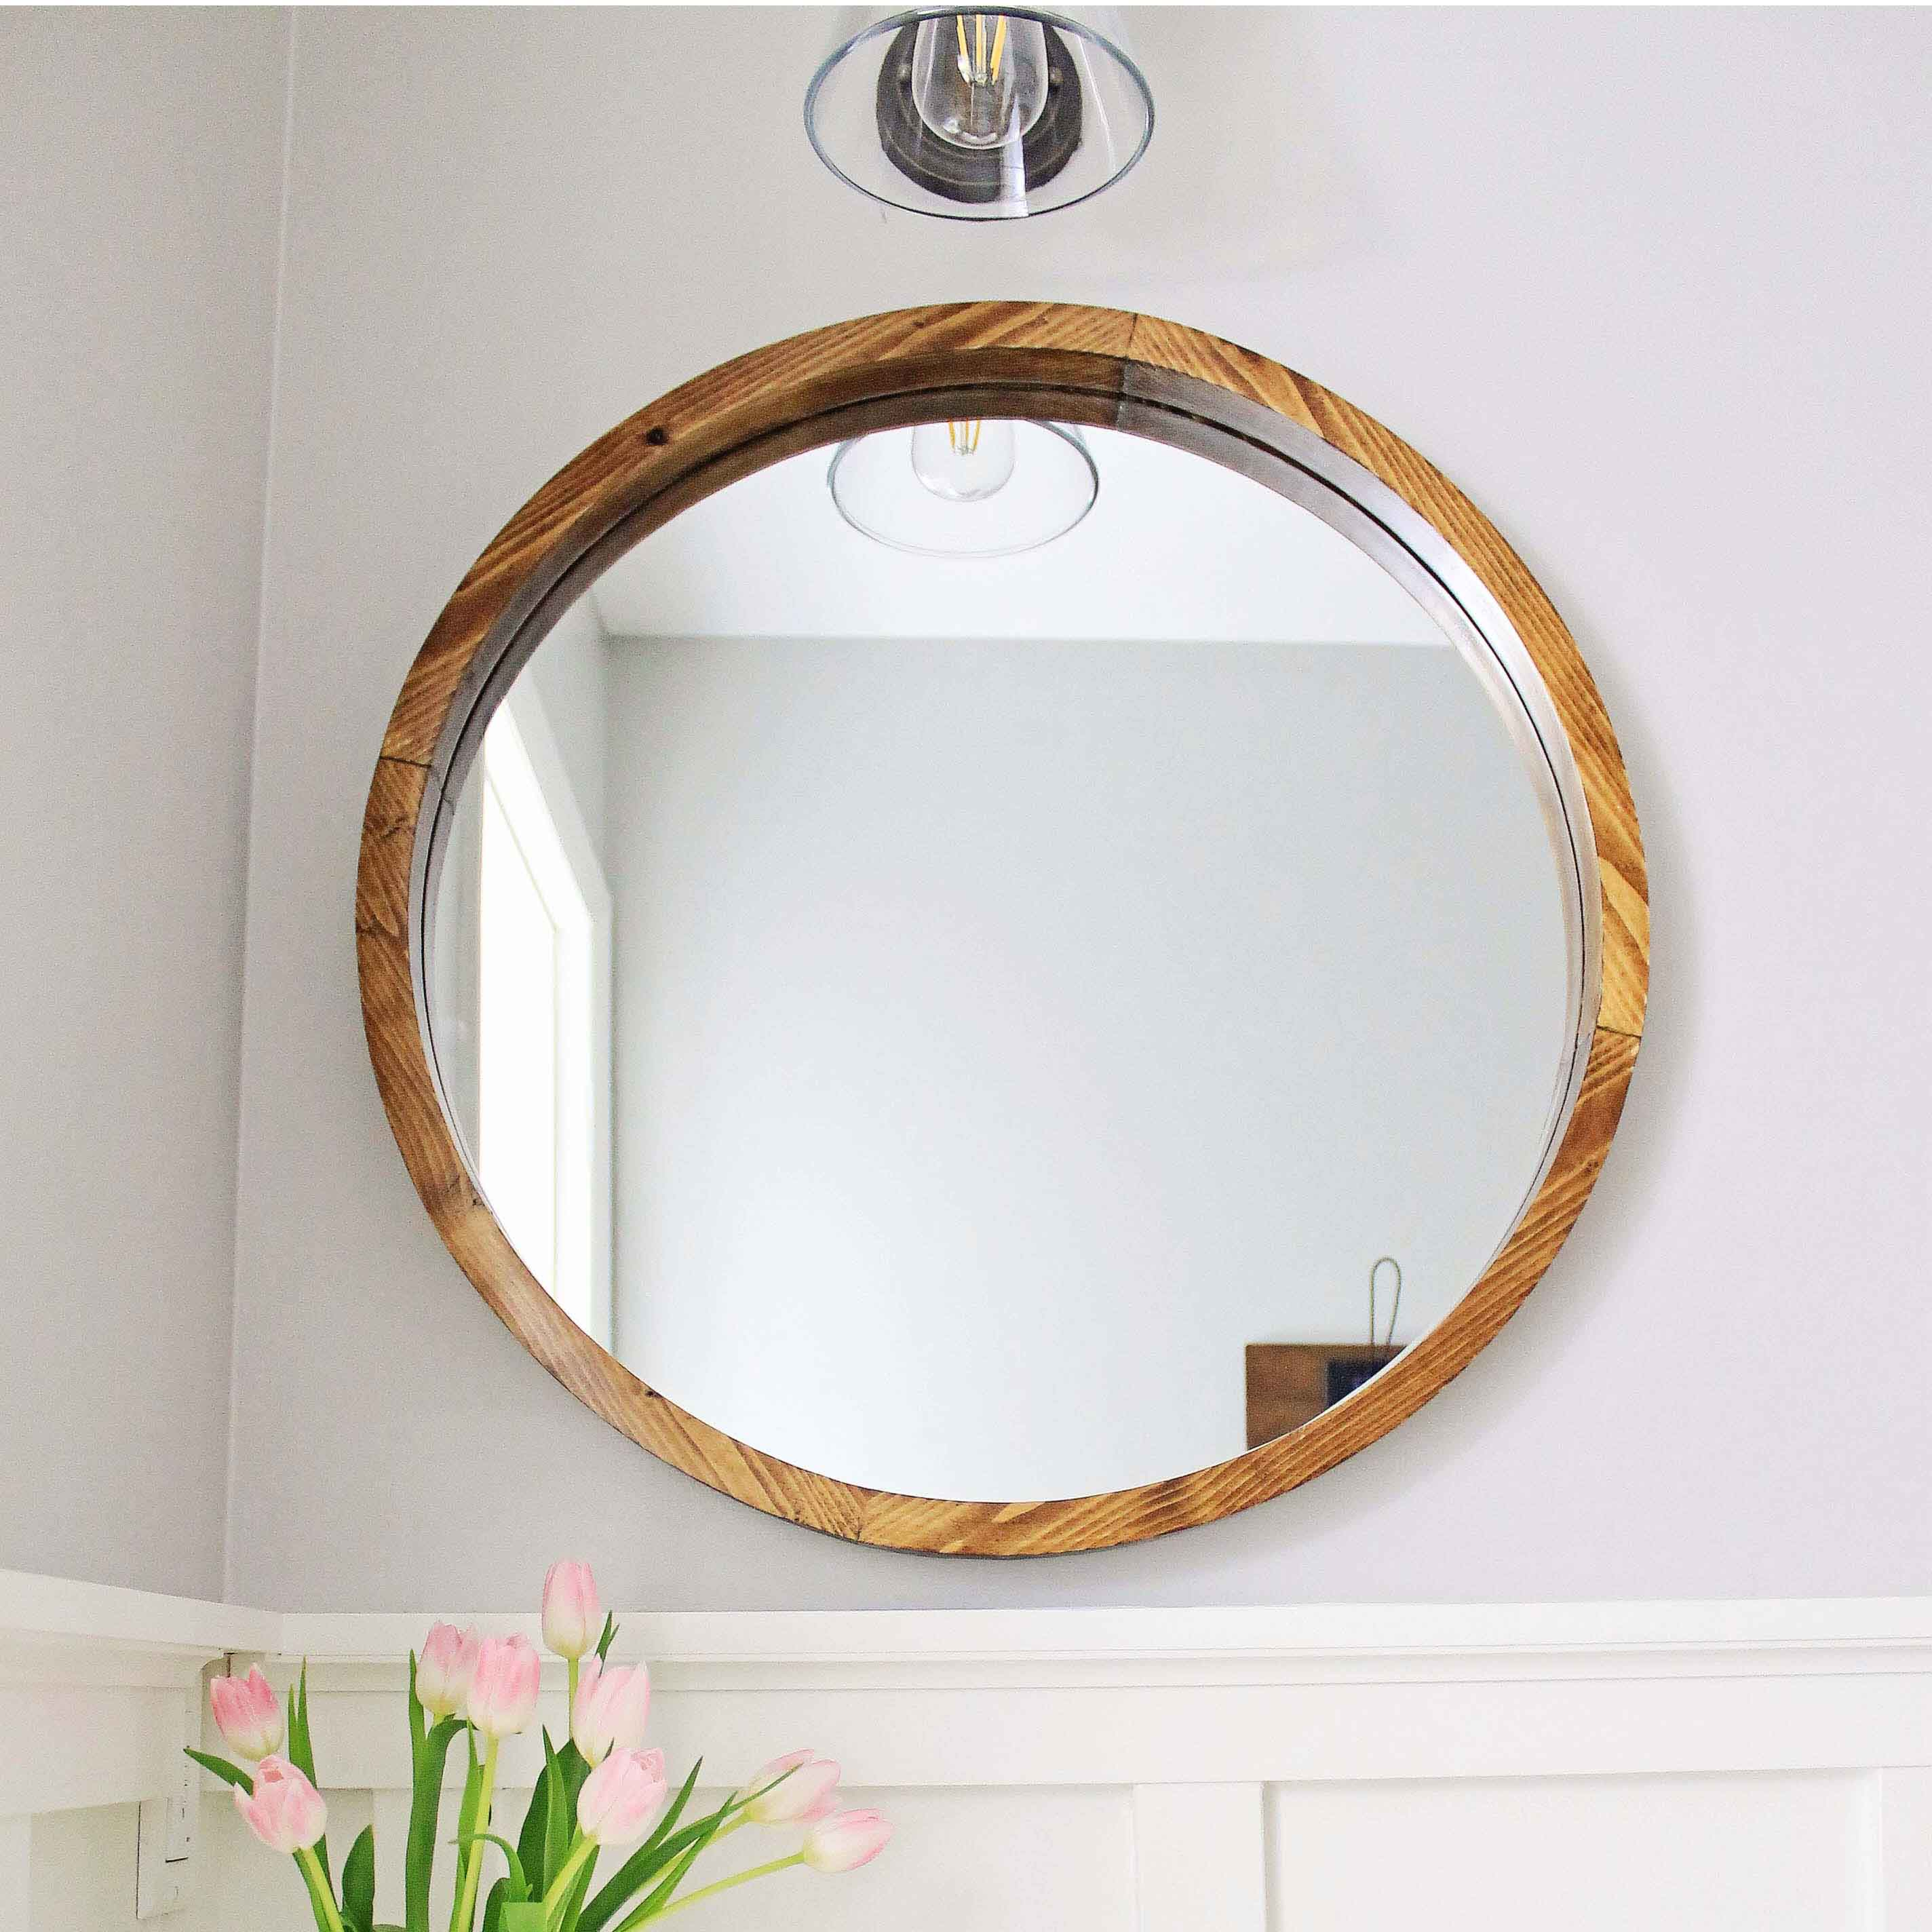 Round wood mirror diy angela marie made Round framed mirror